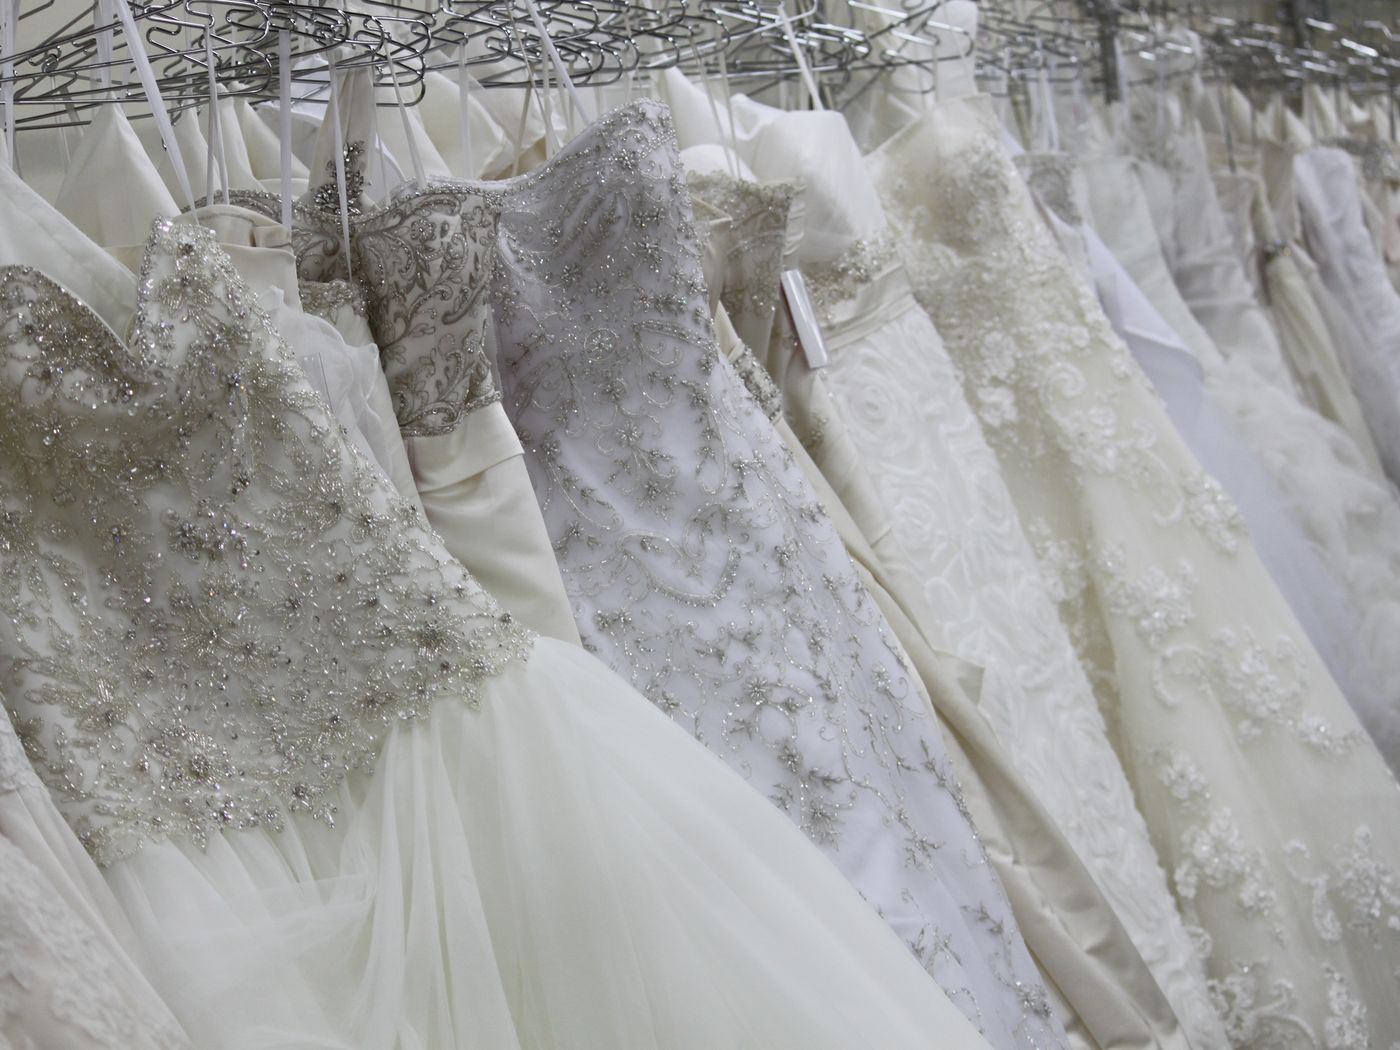 d33e57726def3 7 Places Besides Ebay To Resell Your Wedding Dress - Racked